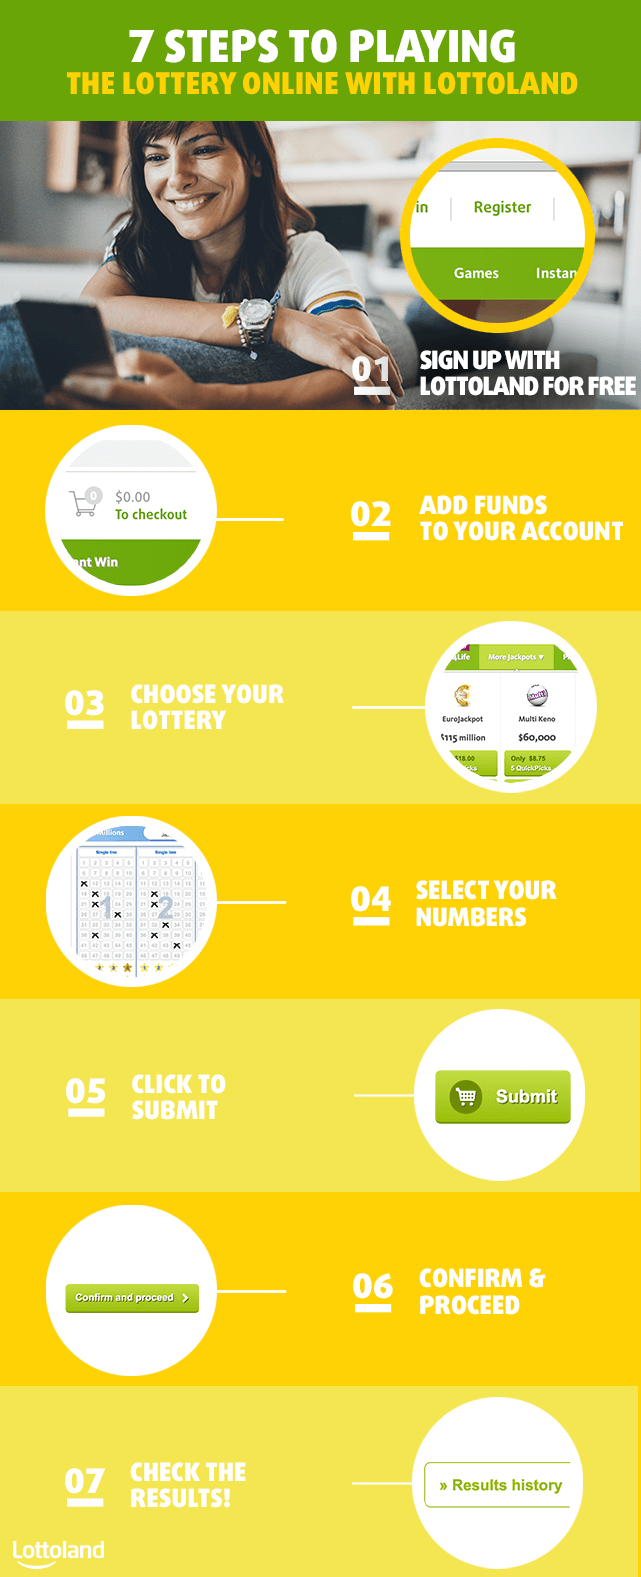 7 steps to playing the lottery online with Lottoland from Canada